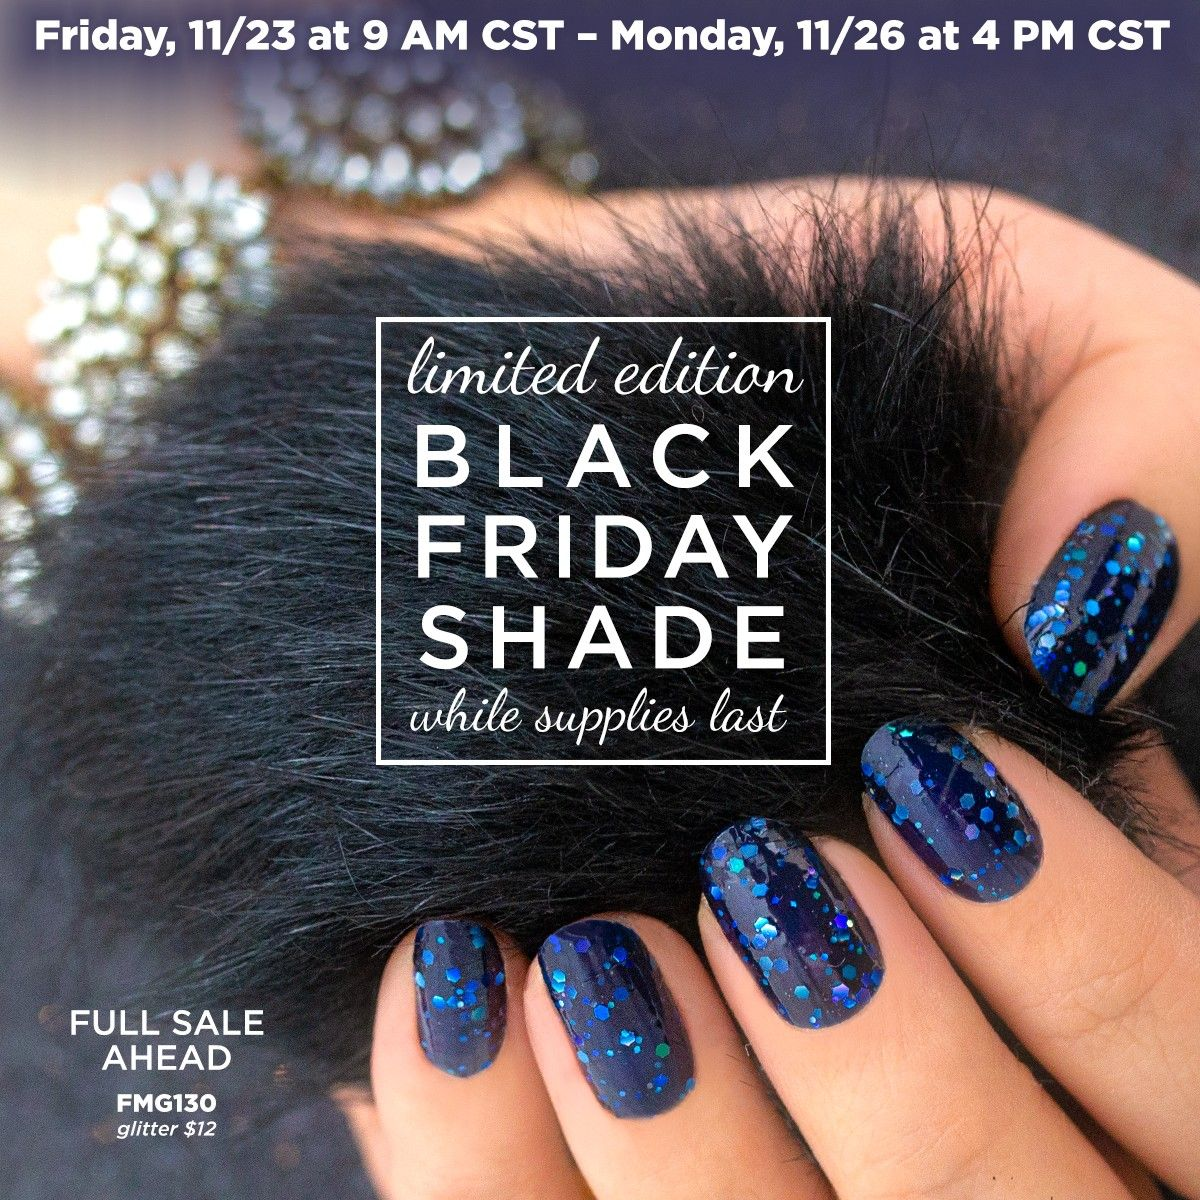 Black Friday Shade! While supplies last! Check out my Link